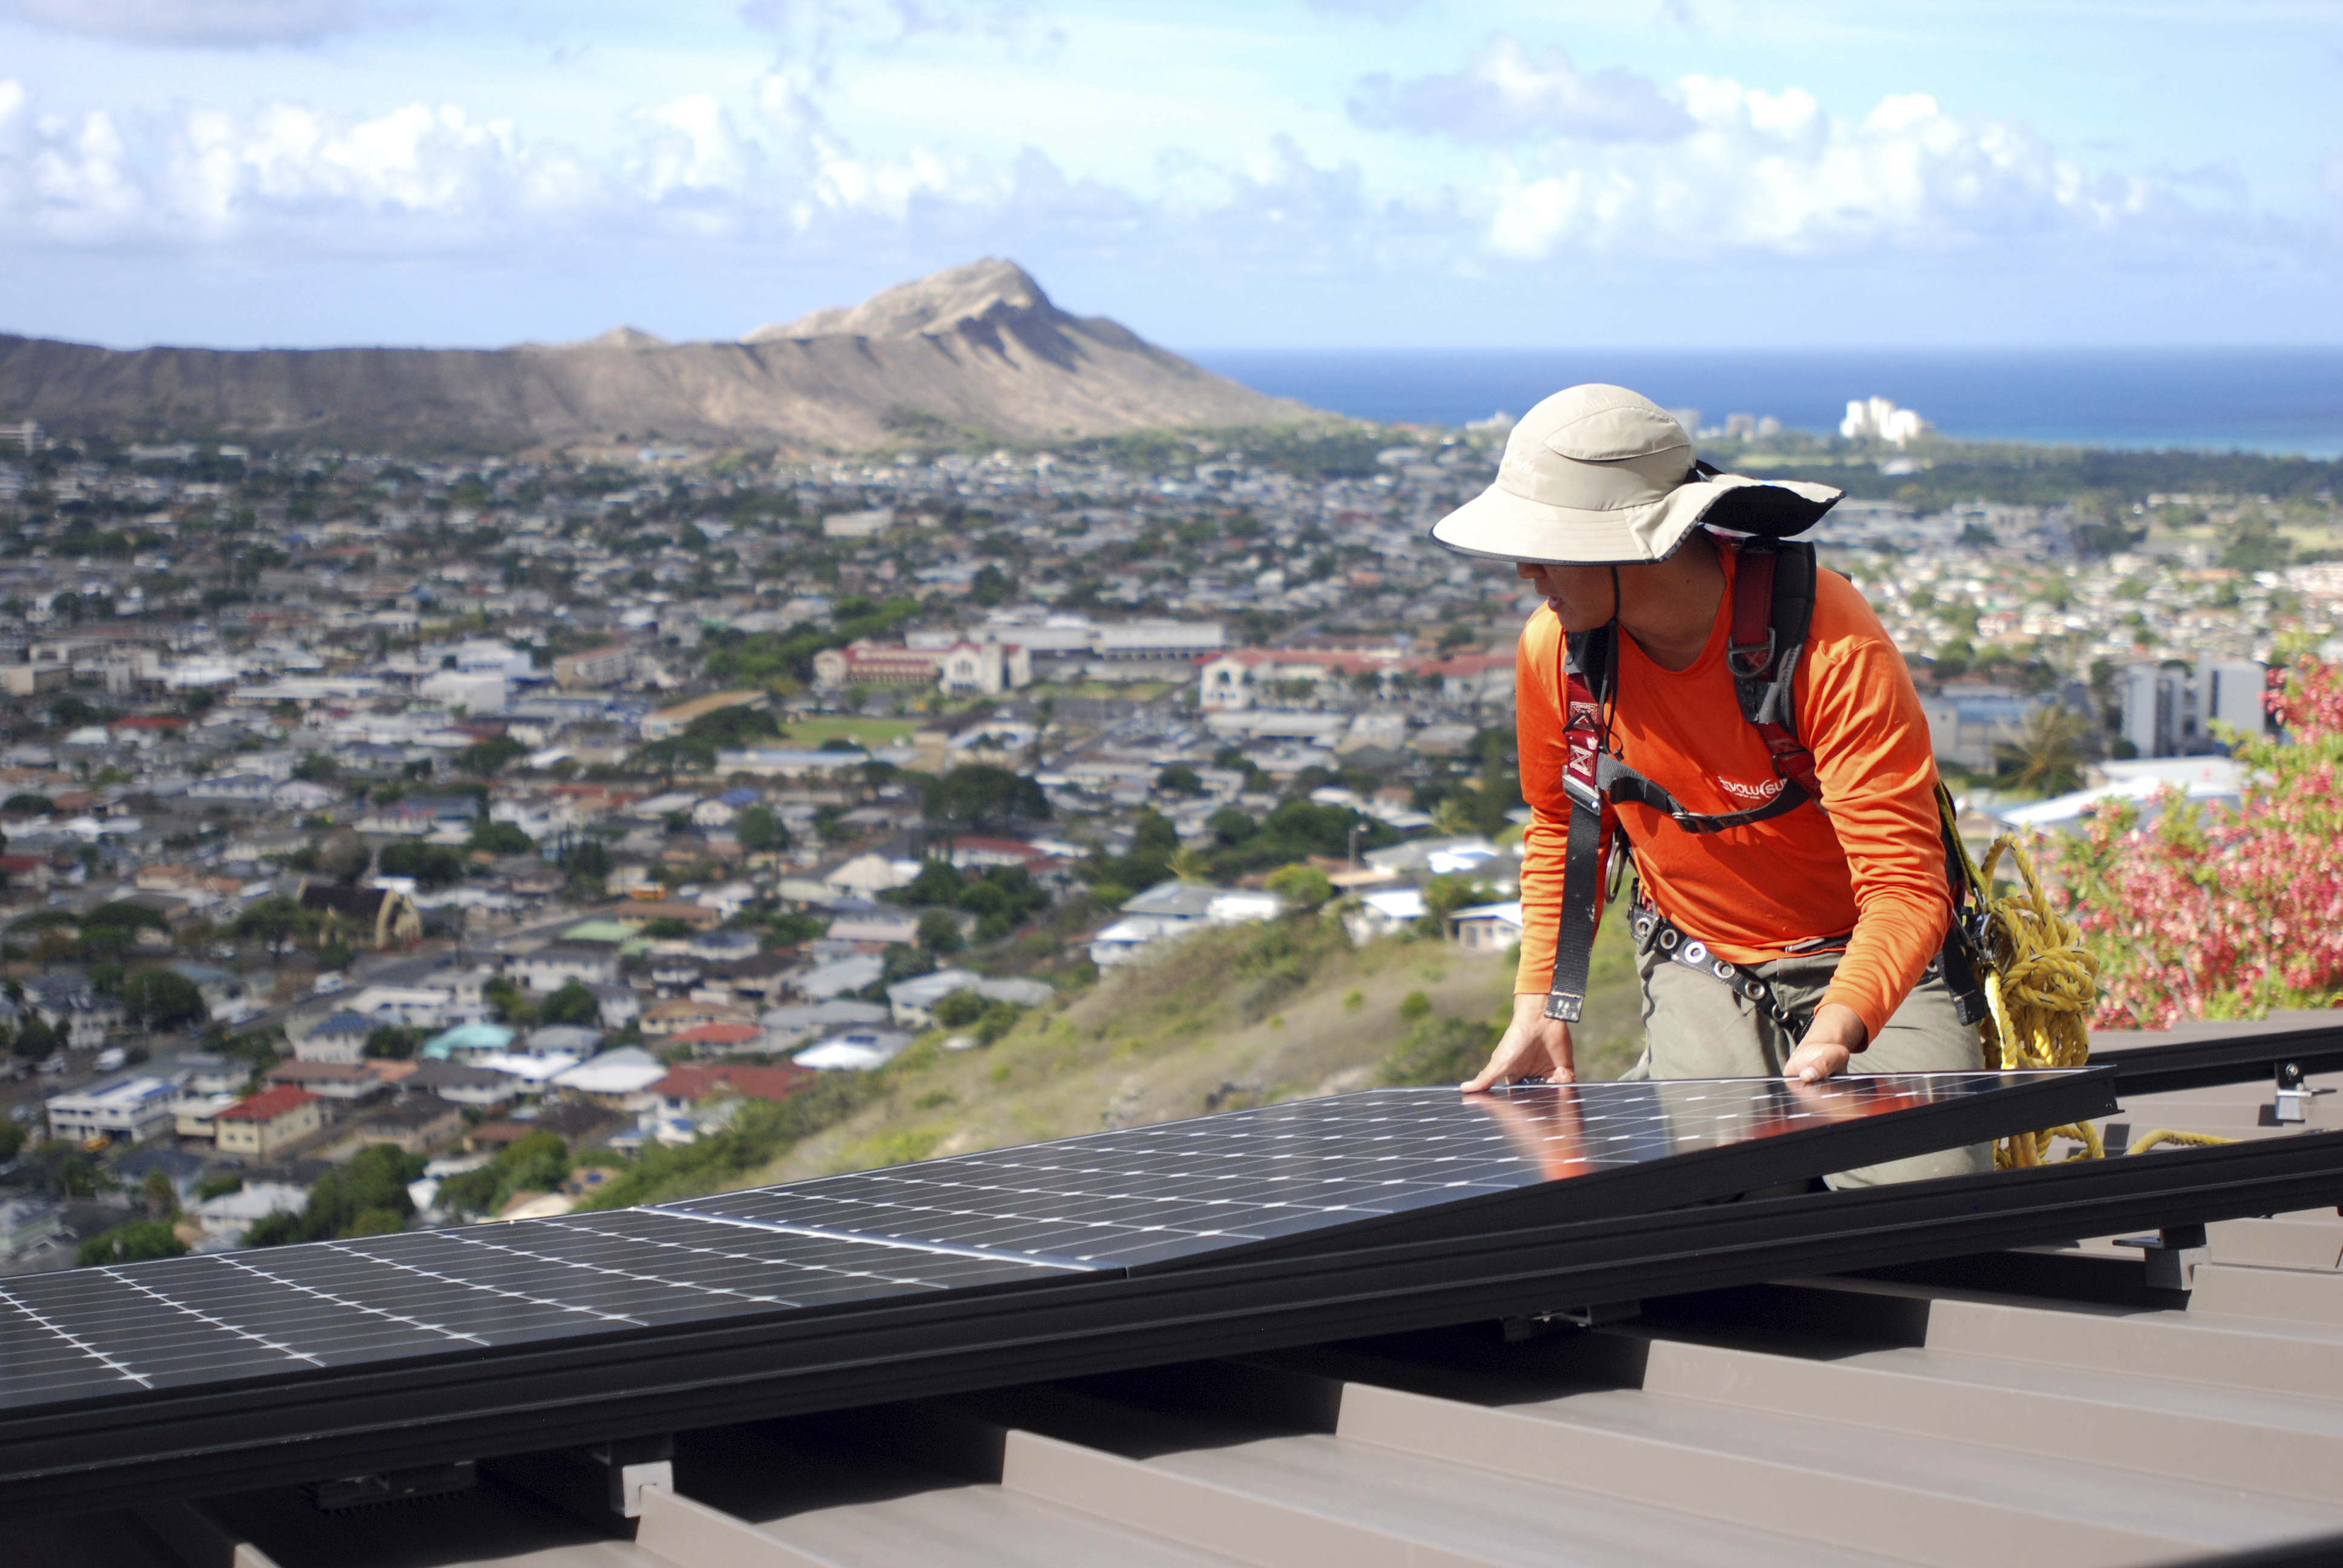 Dane Hew Len, lead installer for RevoluSun, places a solar panel on a roof in Honolulu. If you have the cash, most experts agree buying a solar system outright is a better investment than leasing or taking out a loan.